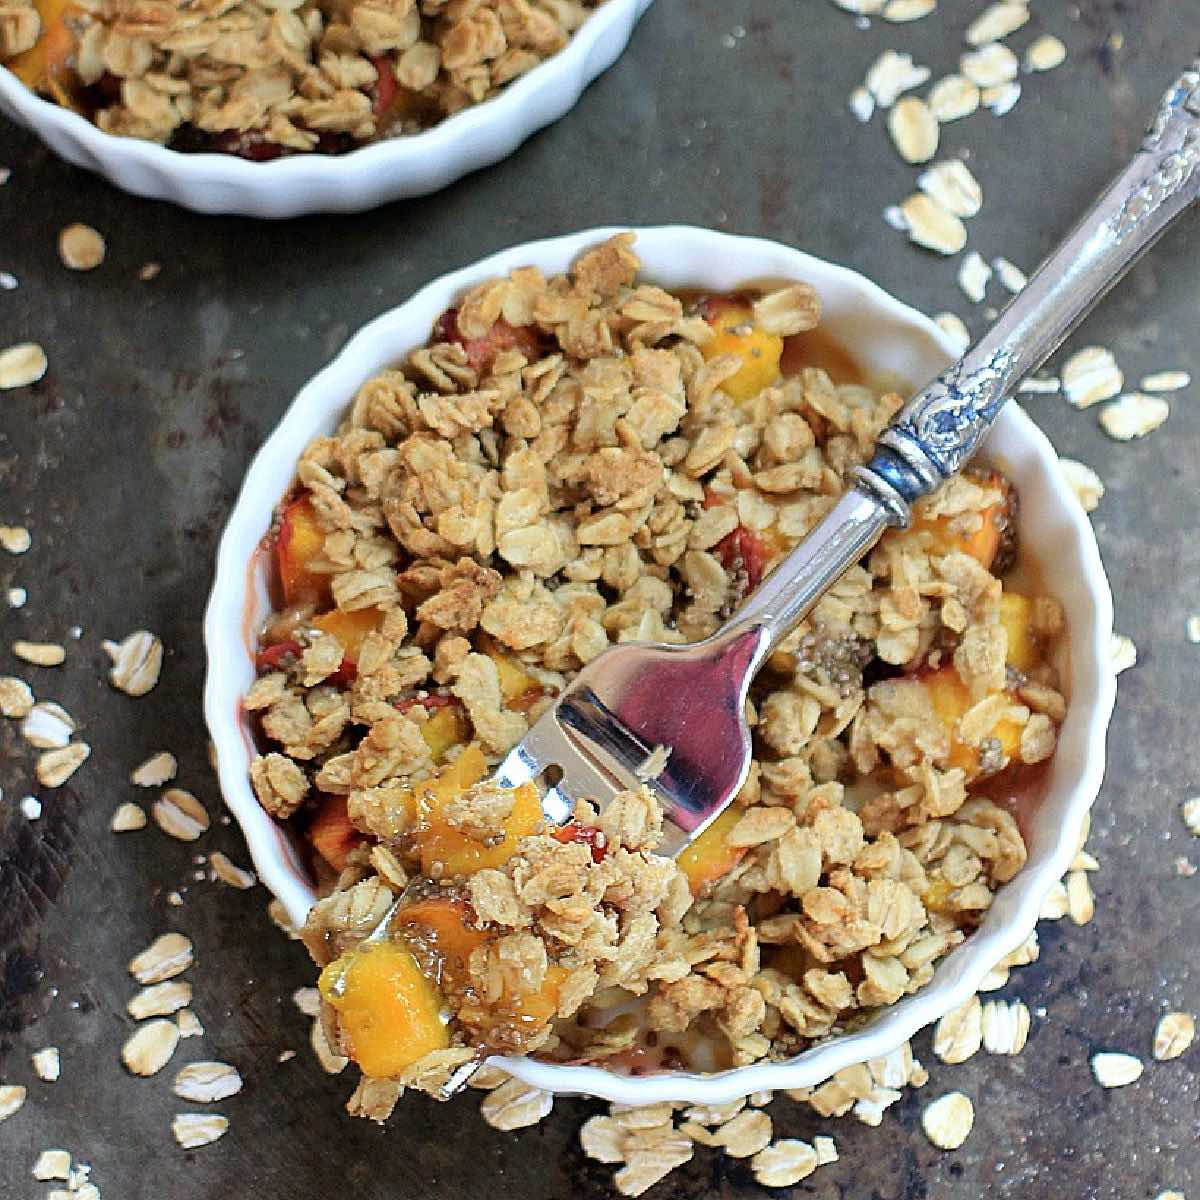 Overhead shot of a gluten free peach crisp in a white dish with a grey background.